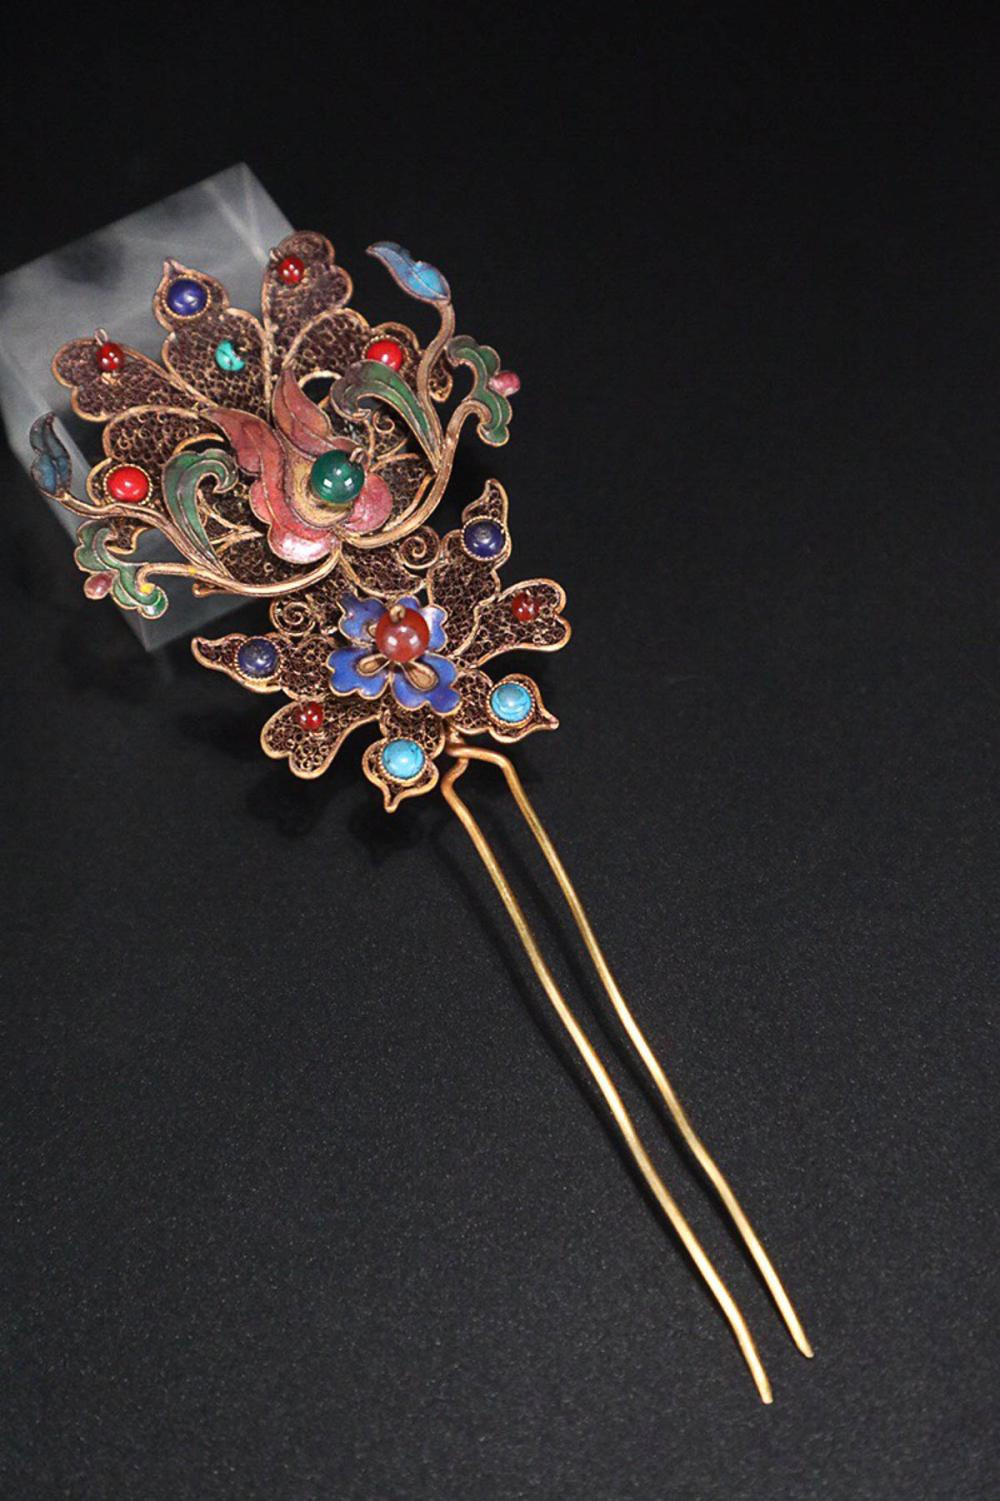 17-19TH CENTURY, A FLORAL DESIGN GILT SILVER HAIRPIN, QING DYNASTY